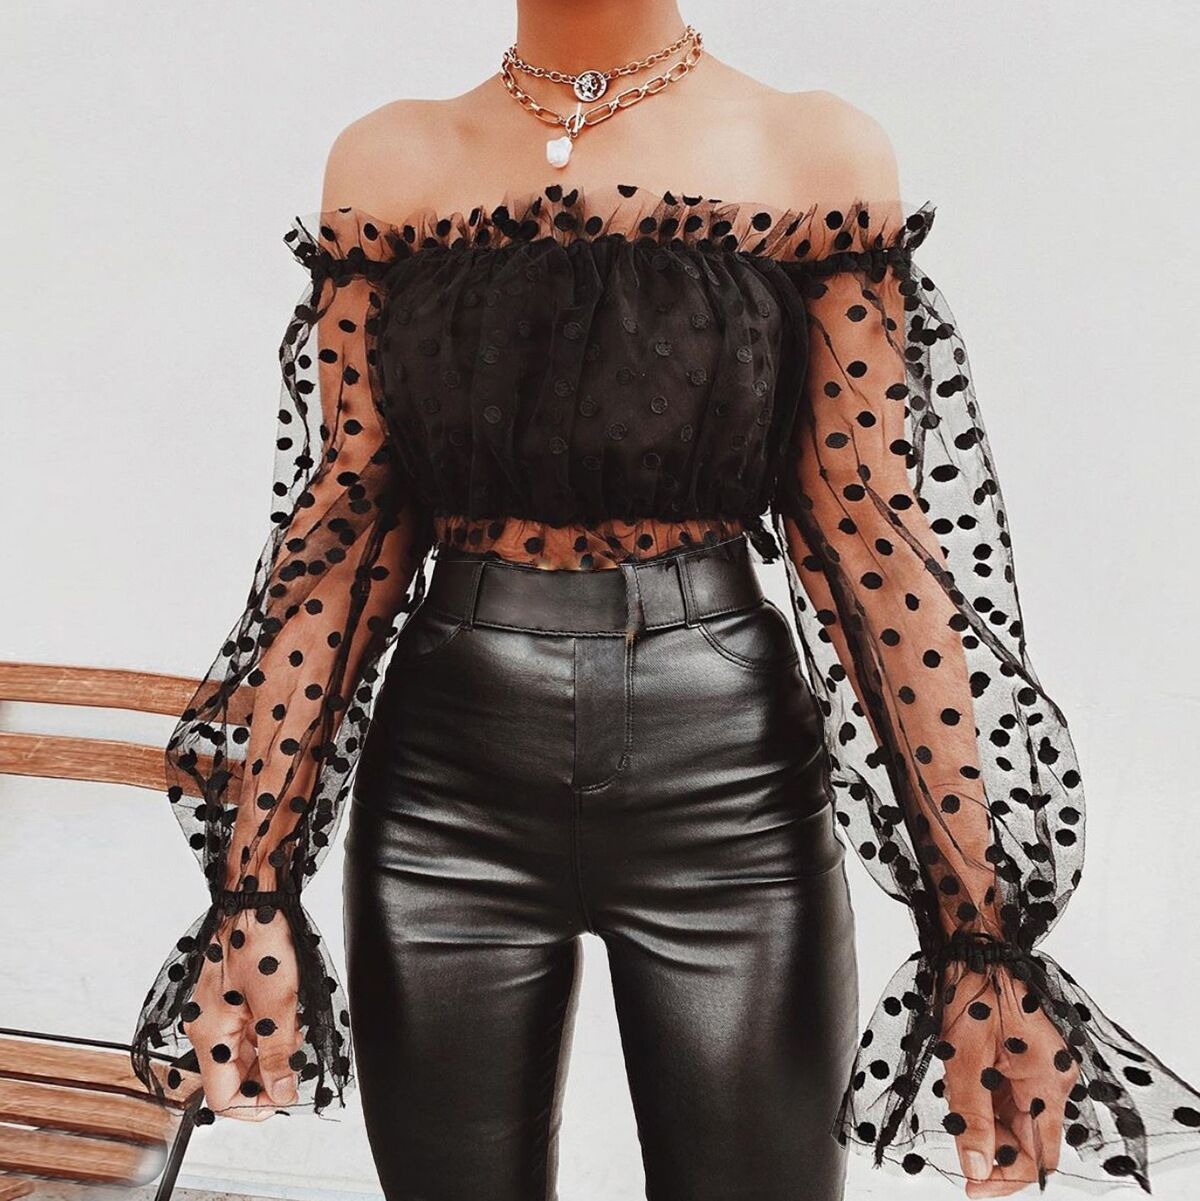 Polka Dot Larten Sleeves Off Shoulder Crop Tops Blouse See Through Mesh Tulle Patchwork Sexy Clubwear Night Date Out For Women